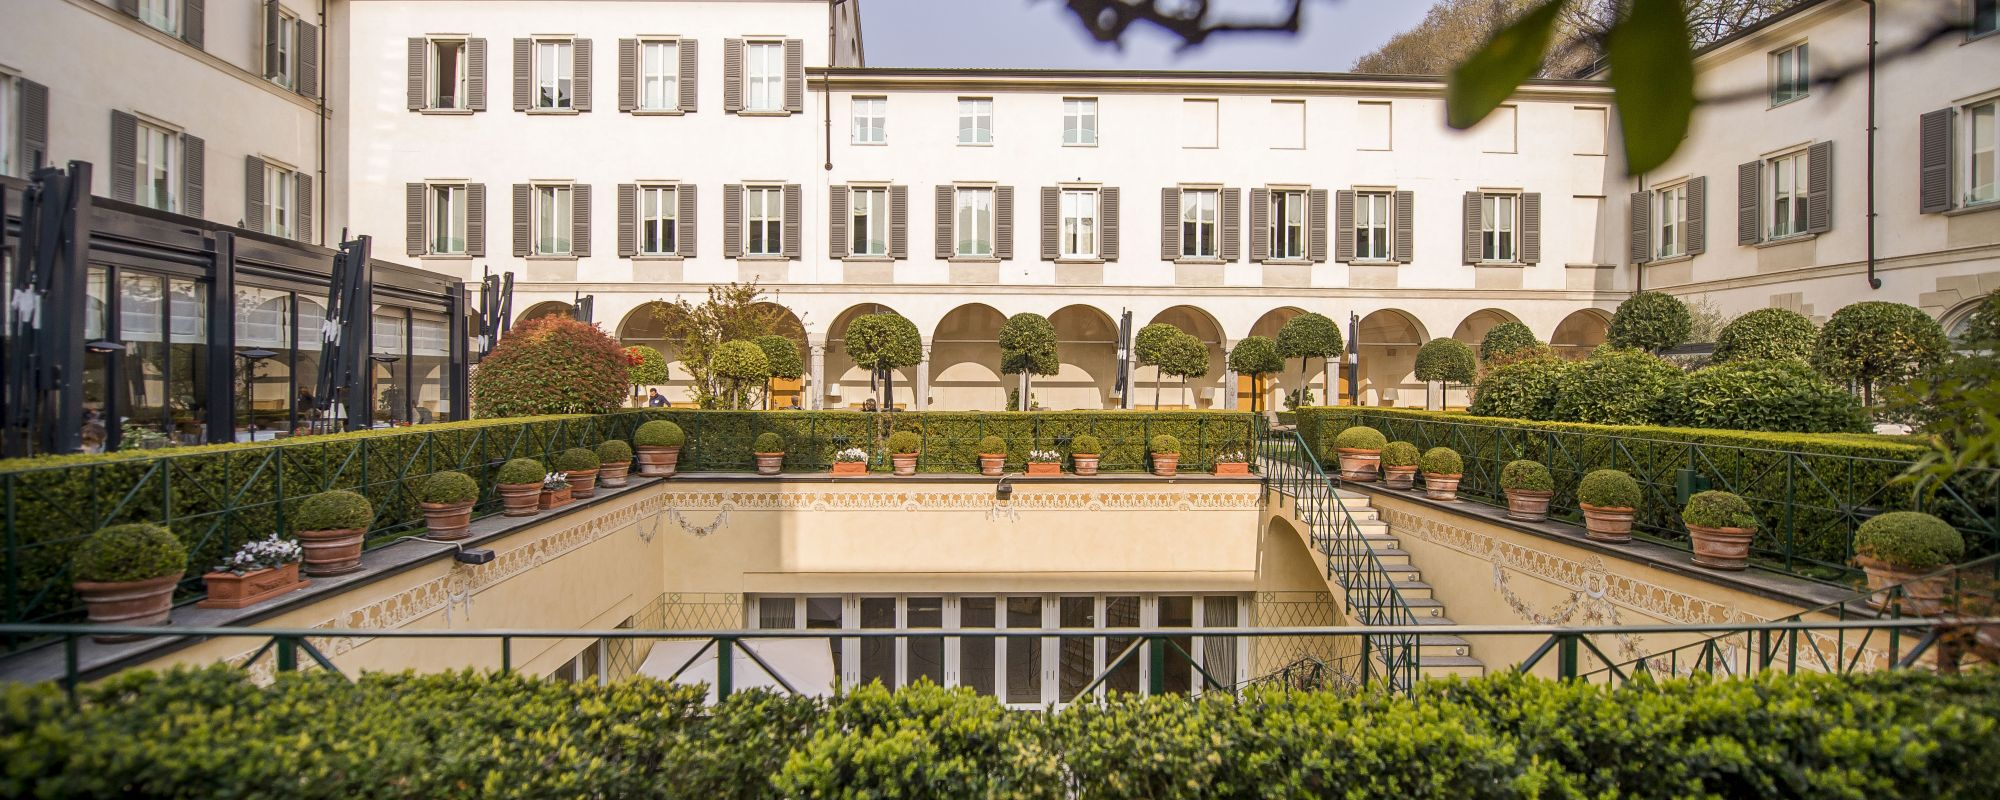 Four Seasons Milano garden